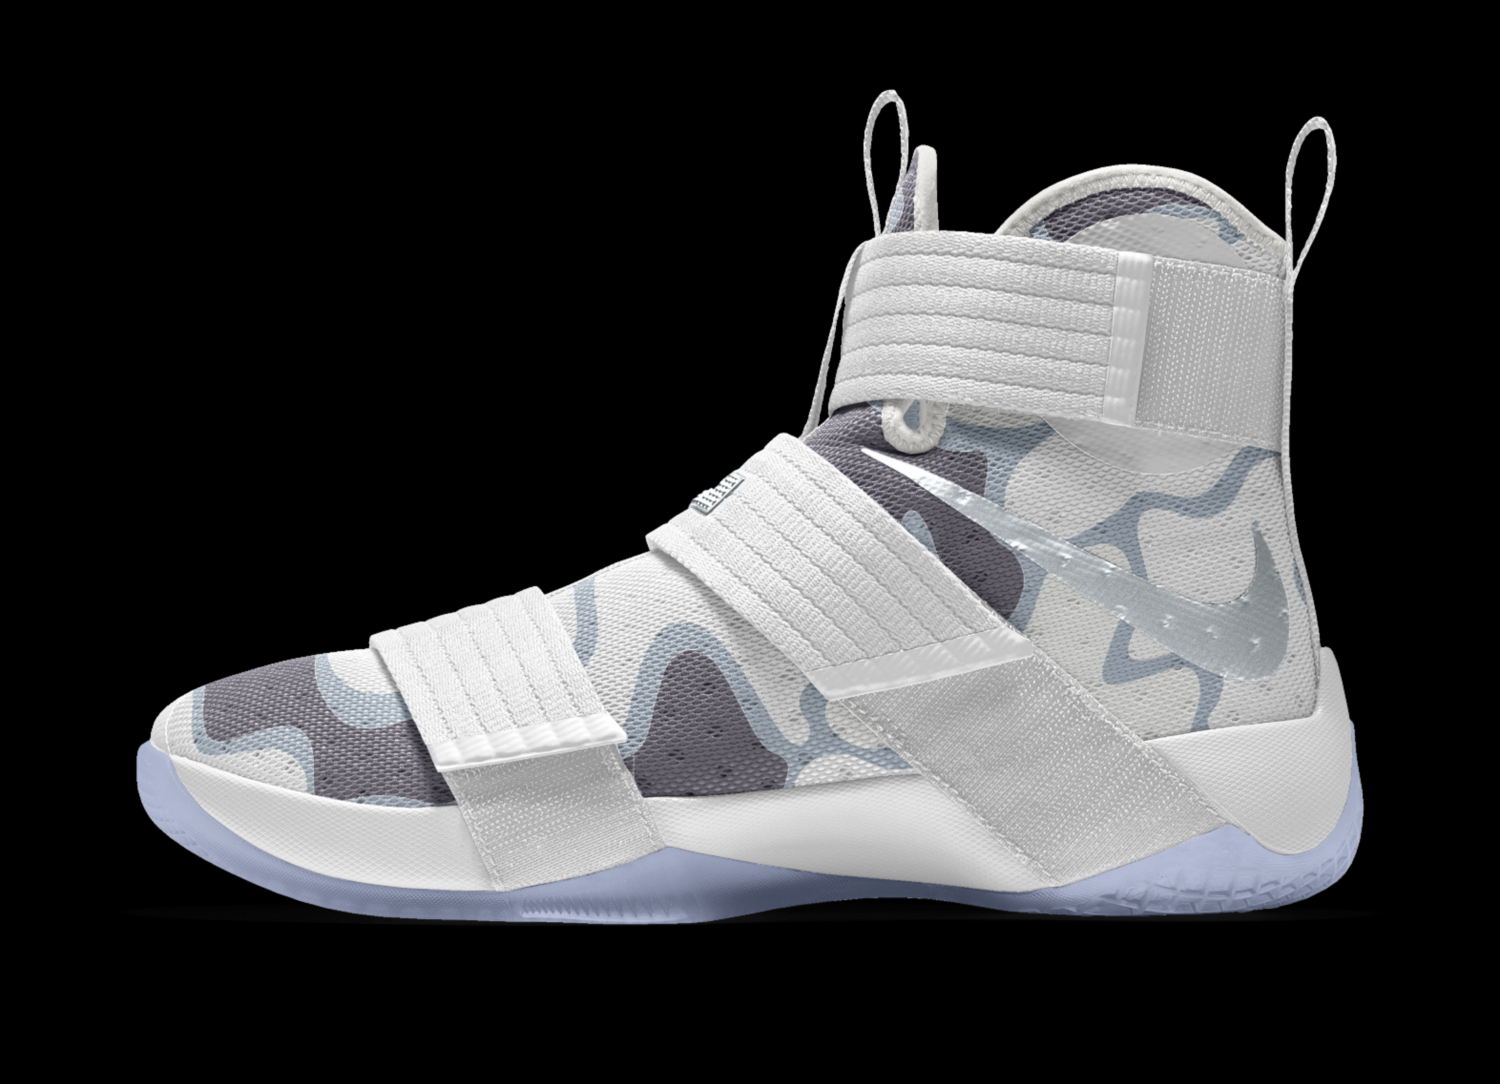 98455b55792 Now Available  Nike Zoom LeBron Soldier 10